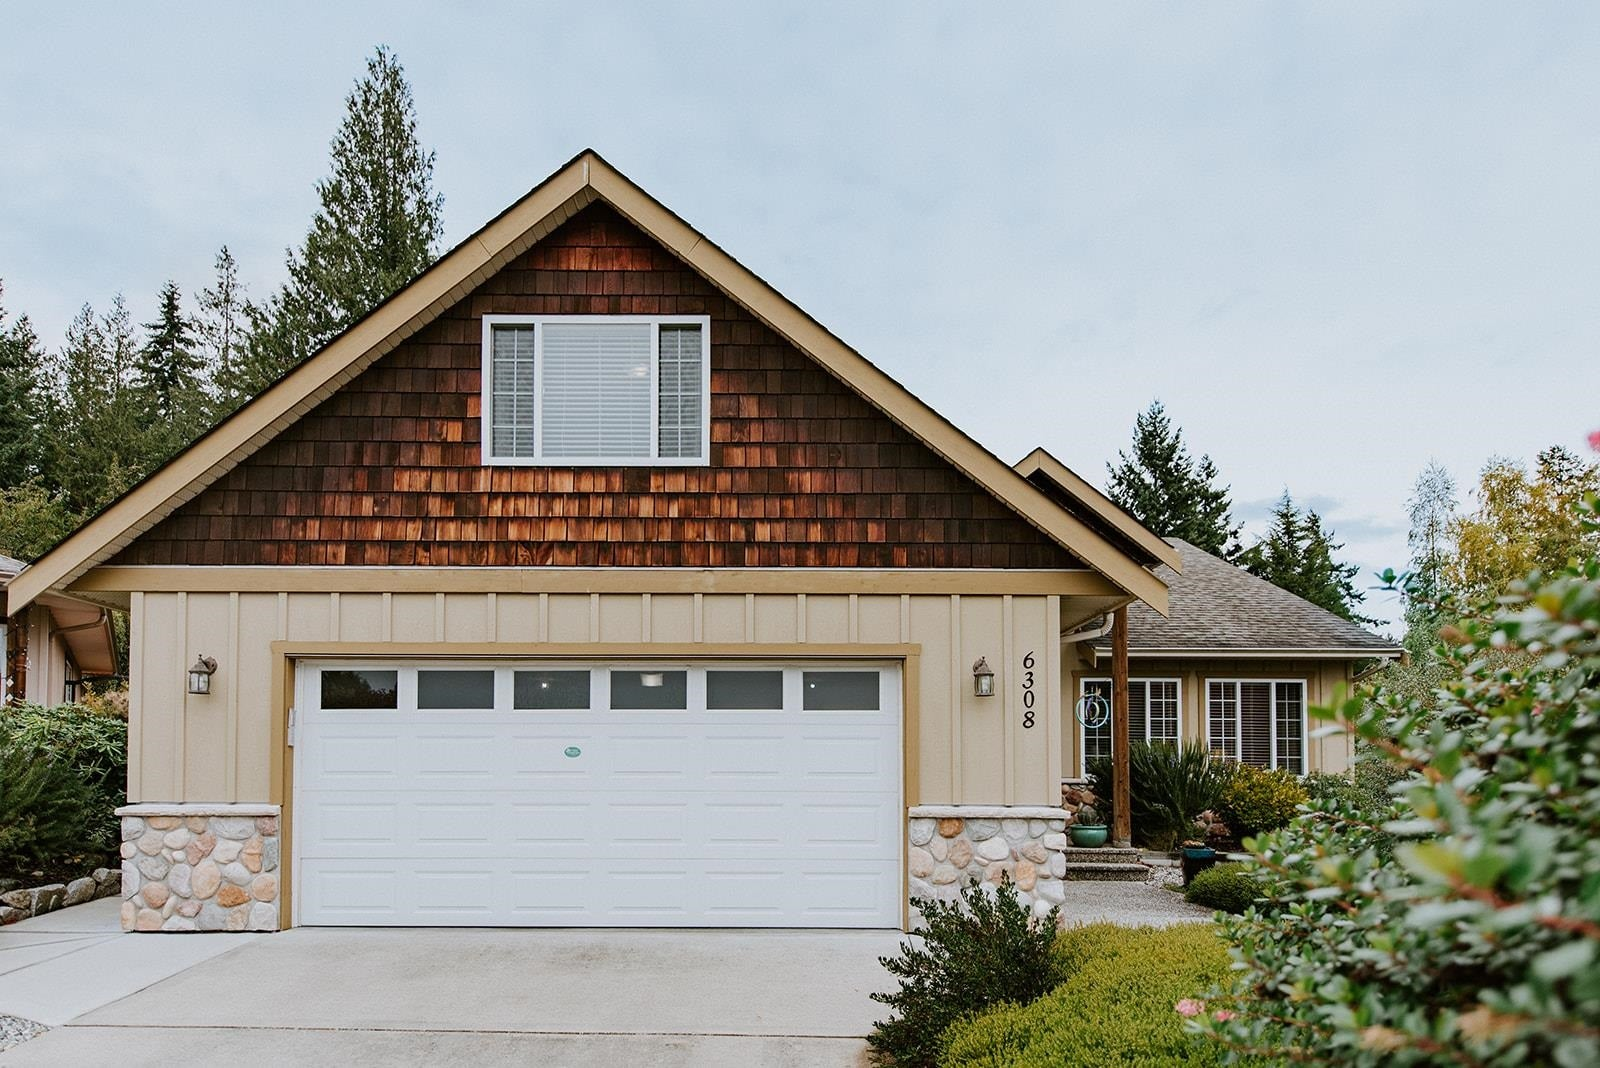 6308 SAMRON ROAD - Sechelt District House/Single Family for sale, 3 Bedrooms (R2625911)